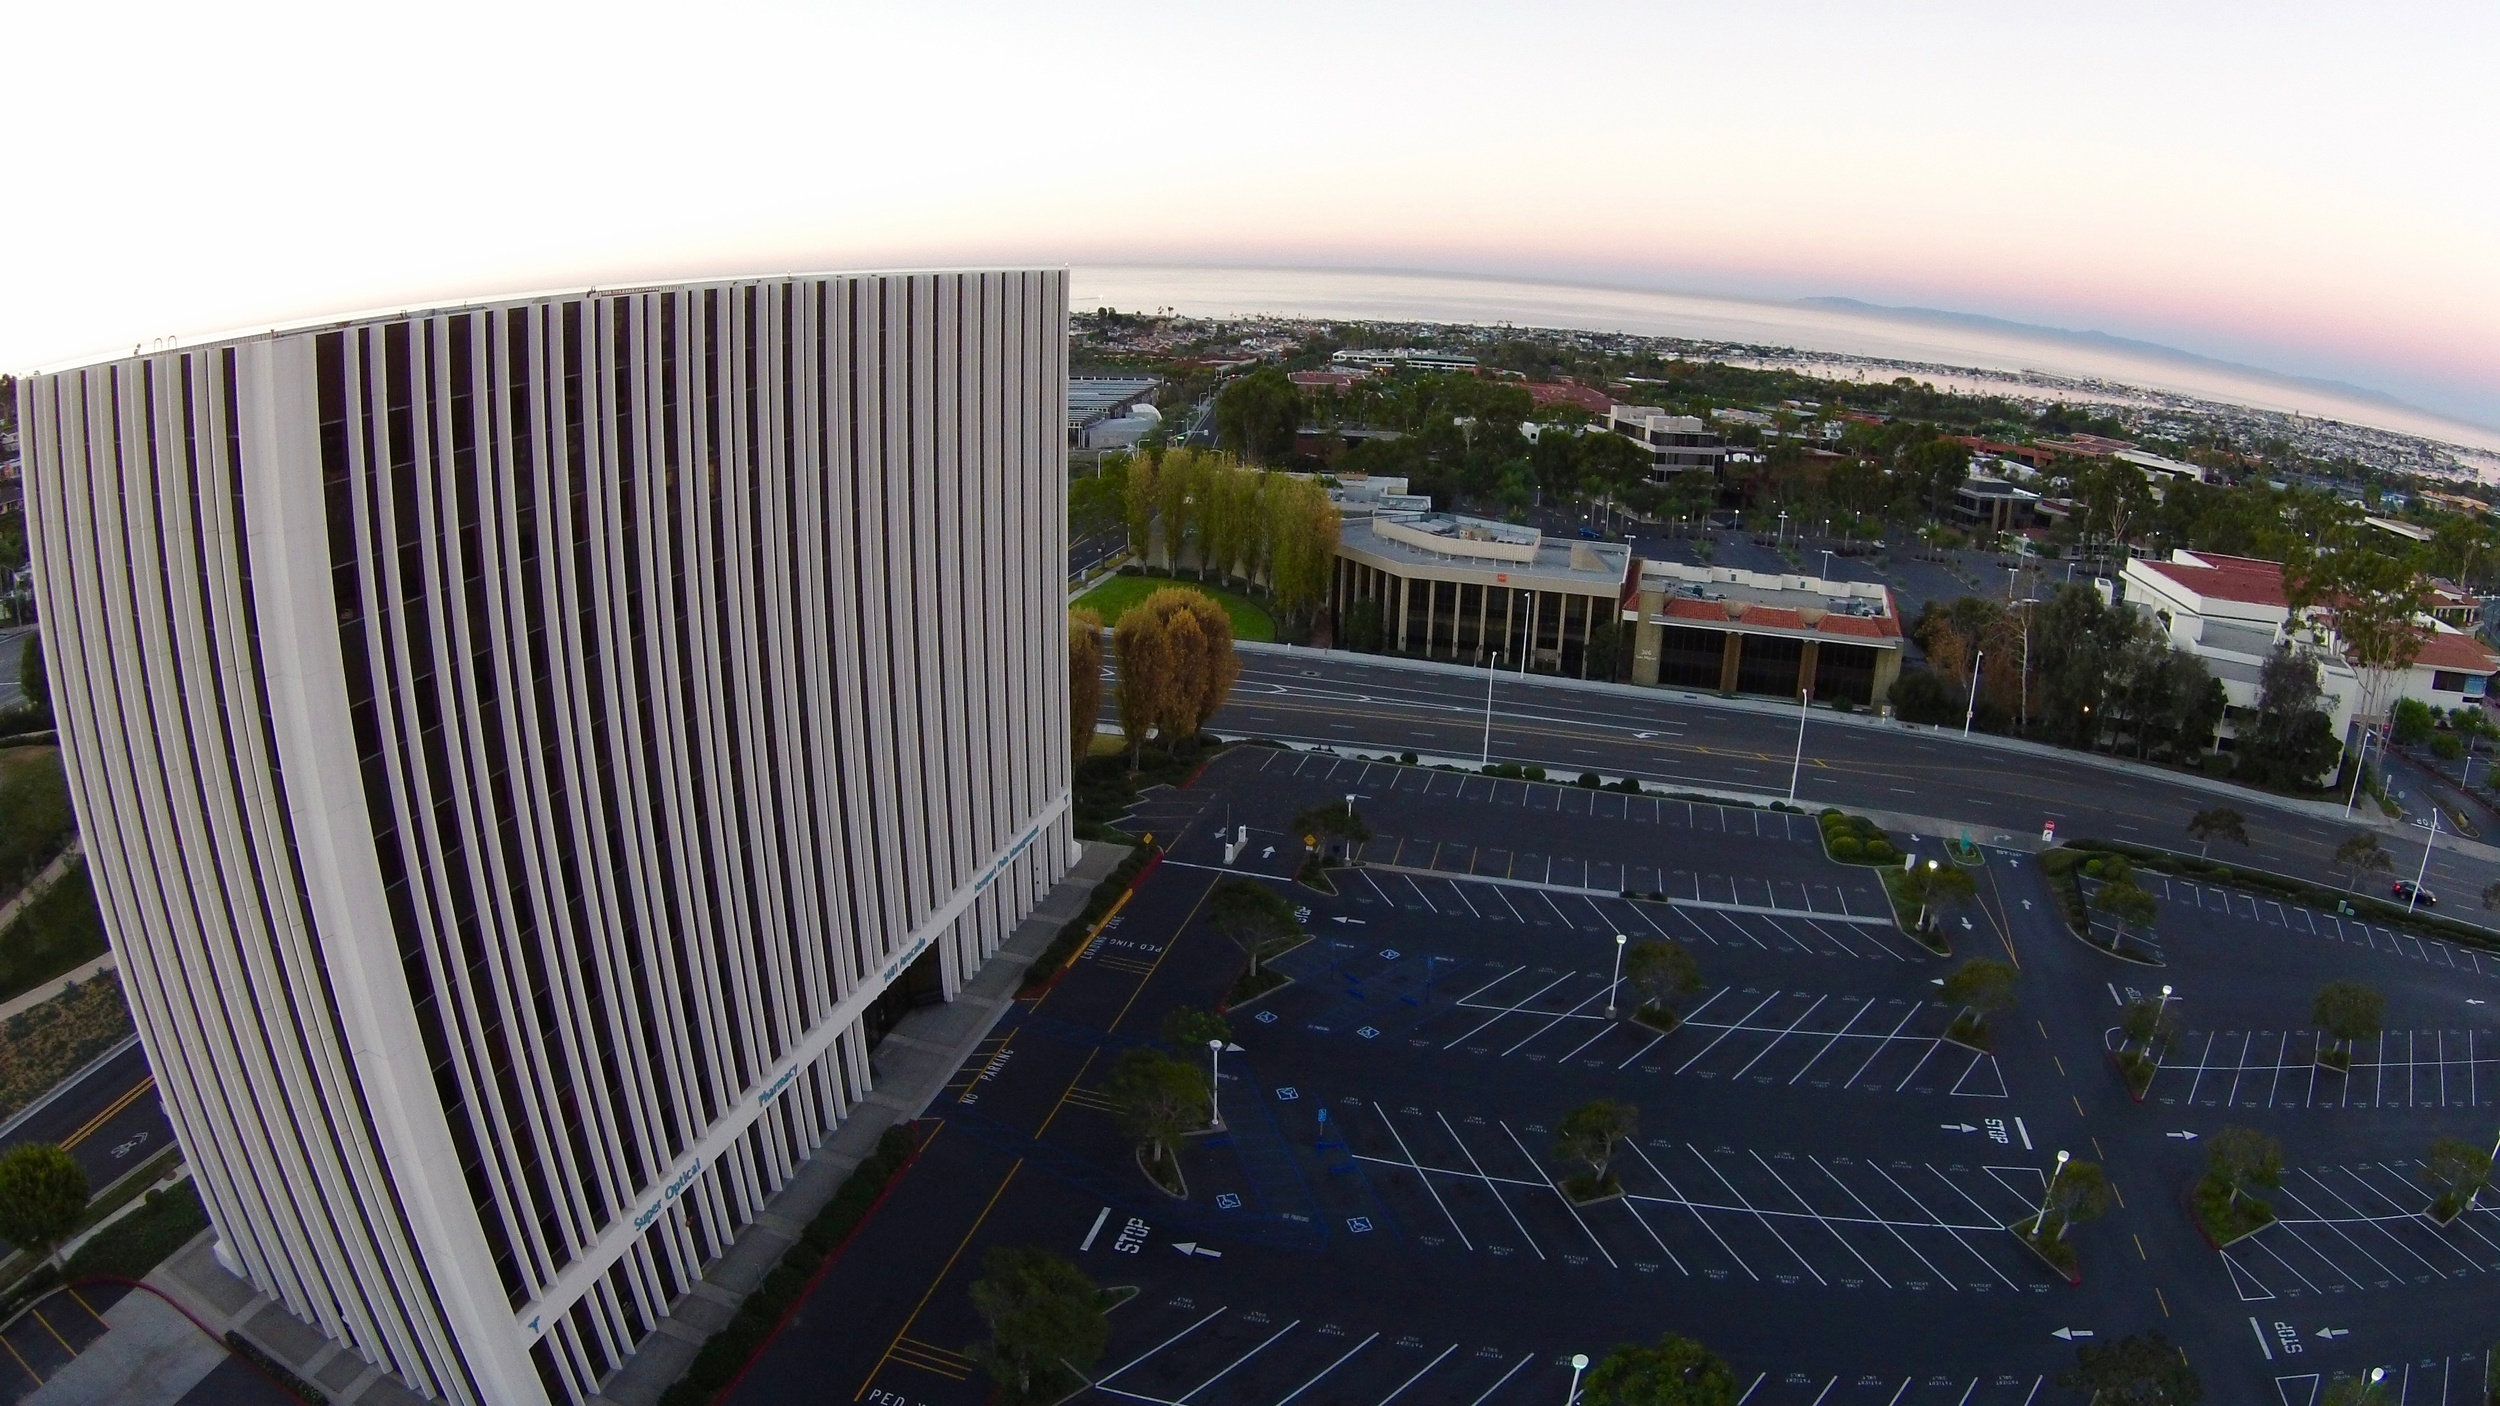 Aerial view of our ocean view location - 1401 Avocado, Newport Beach, California